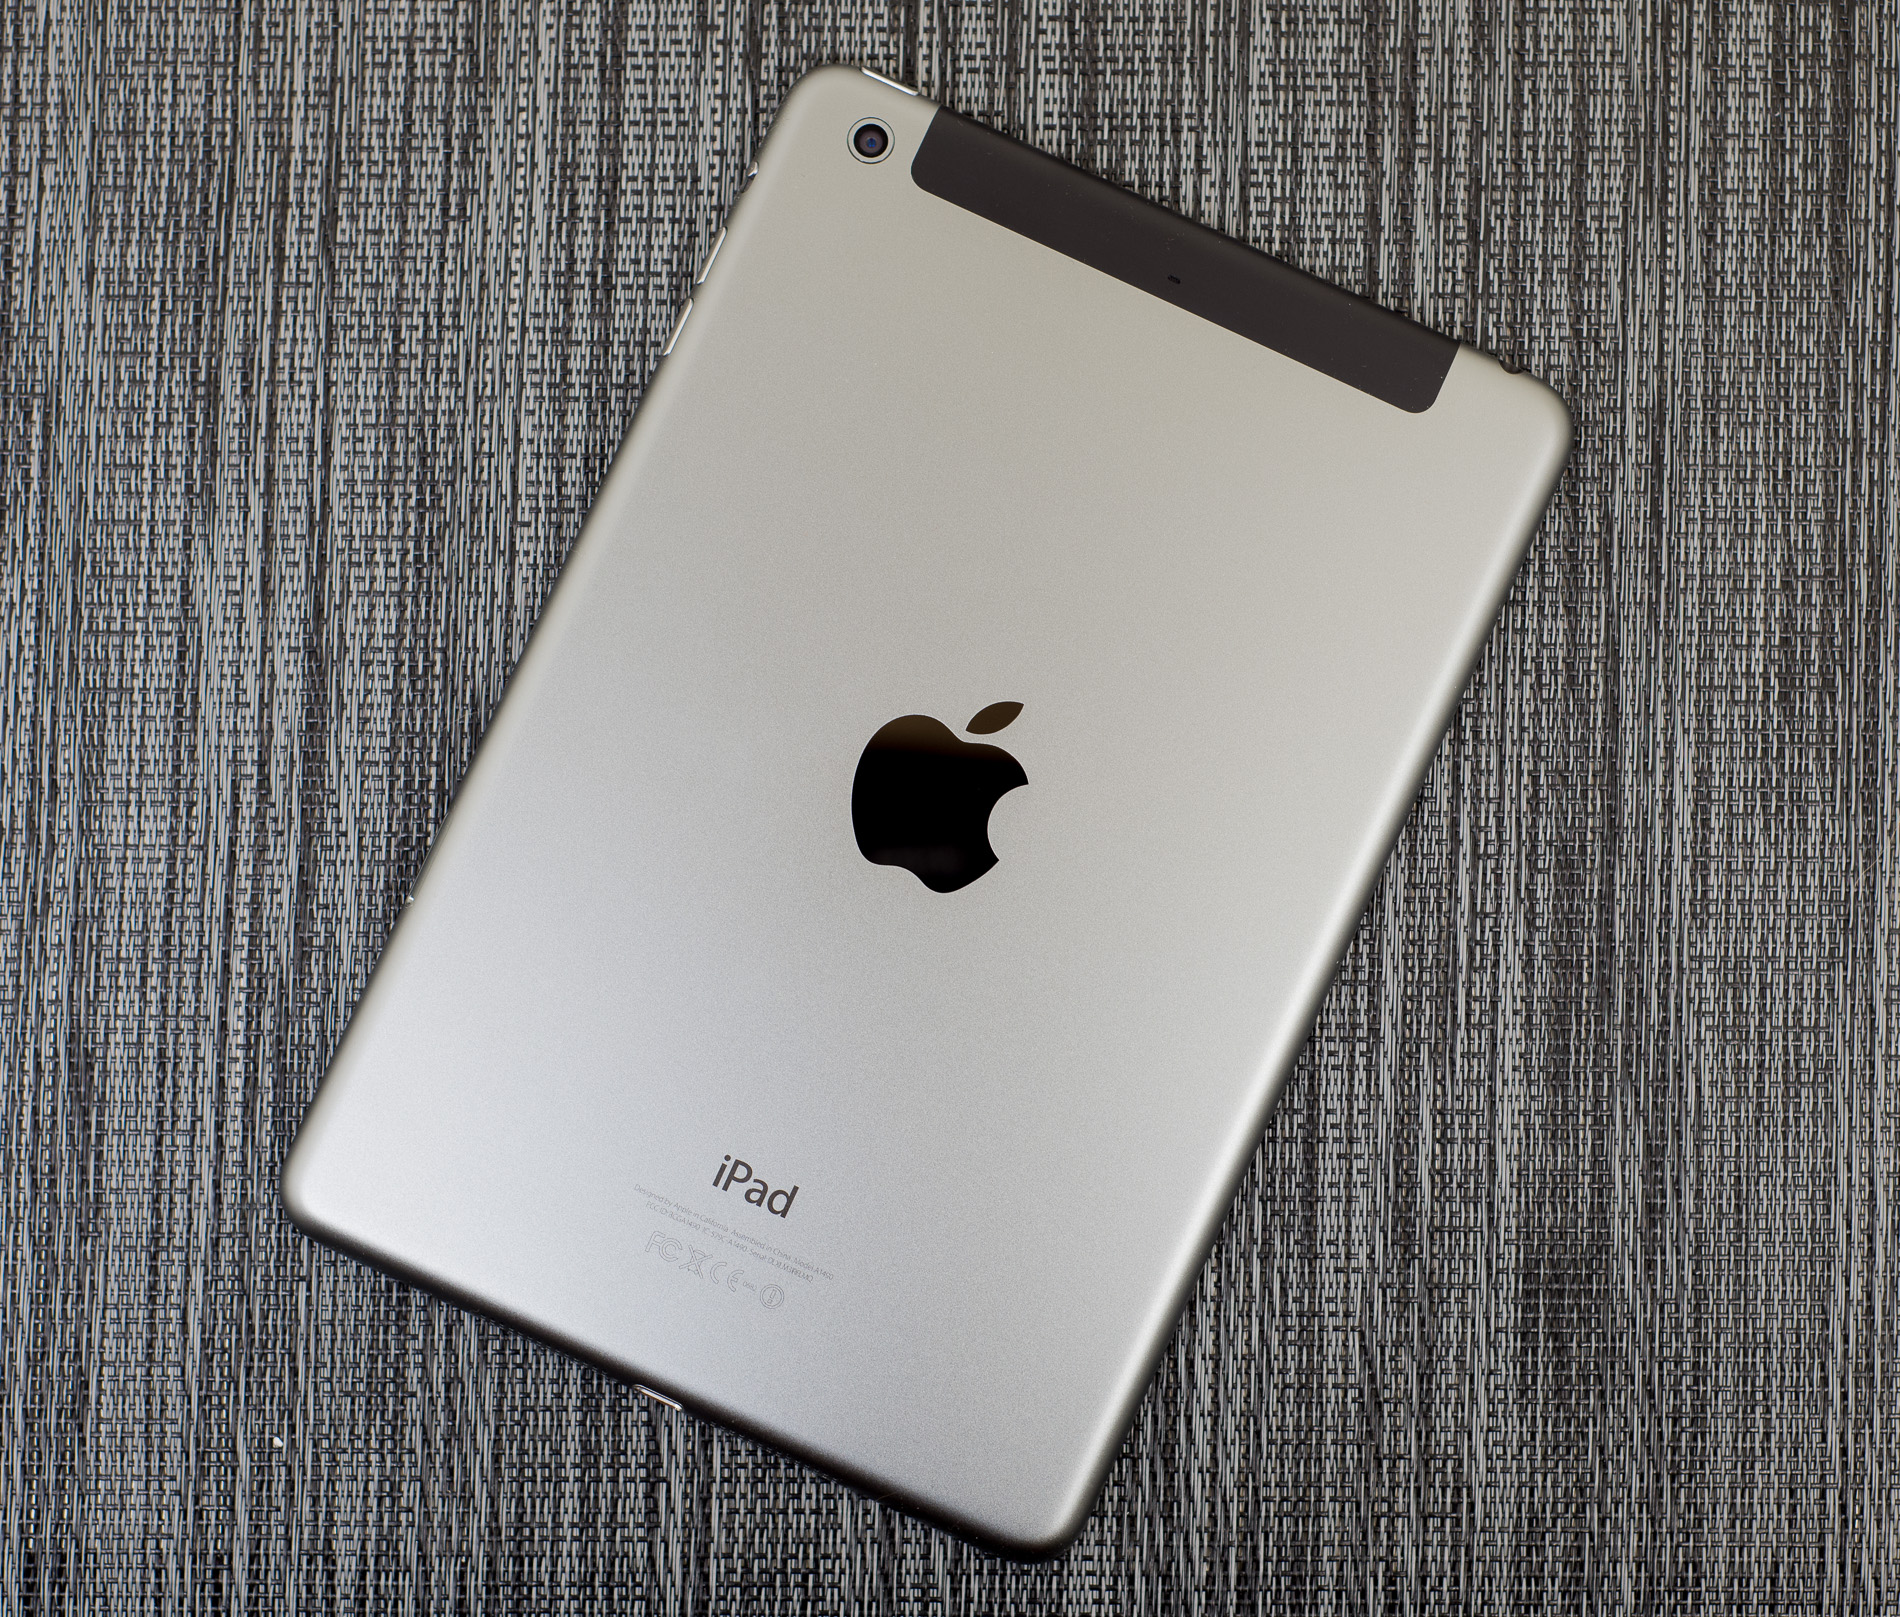 Ipad mini with retina for typing papers?